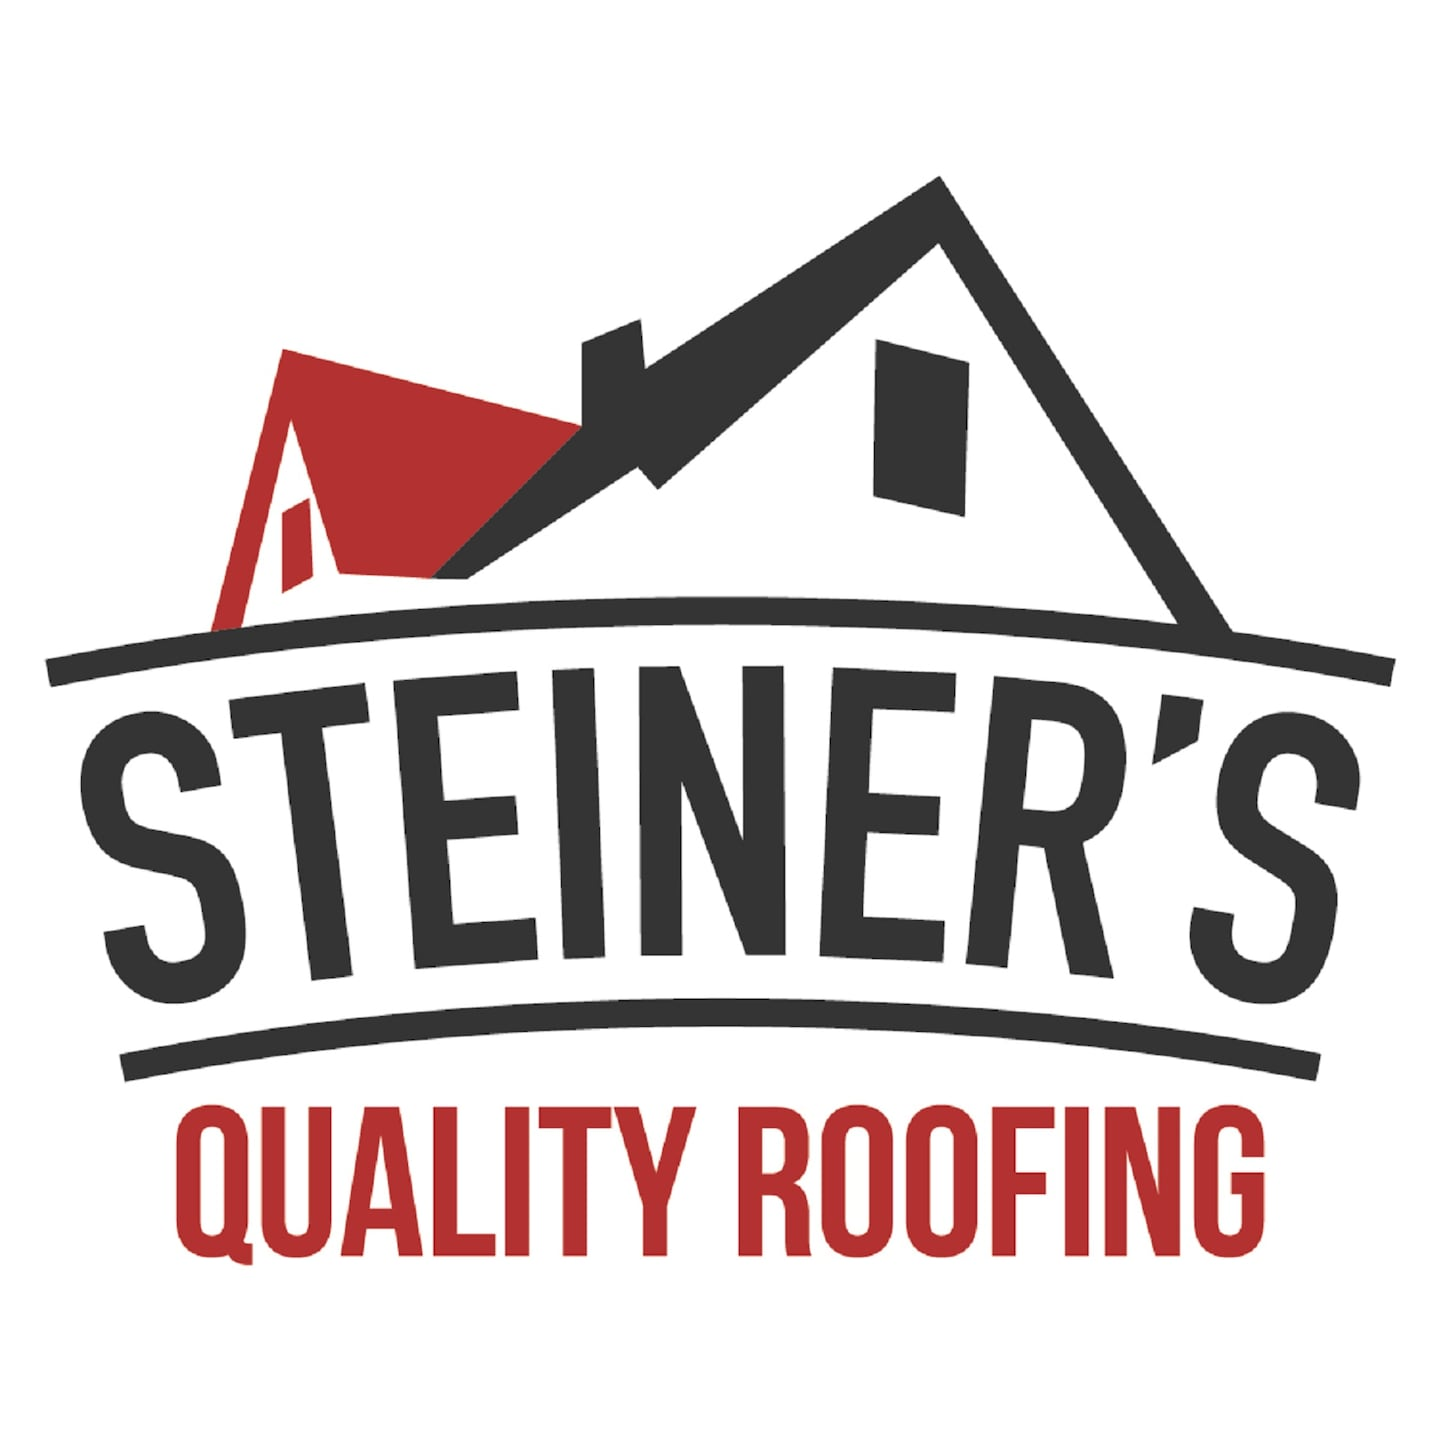 Steiners Quality Roofing